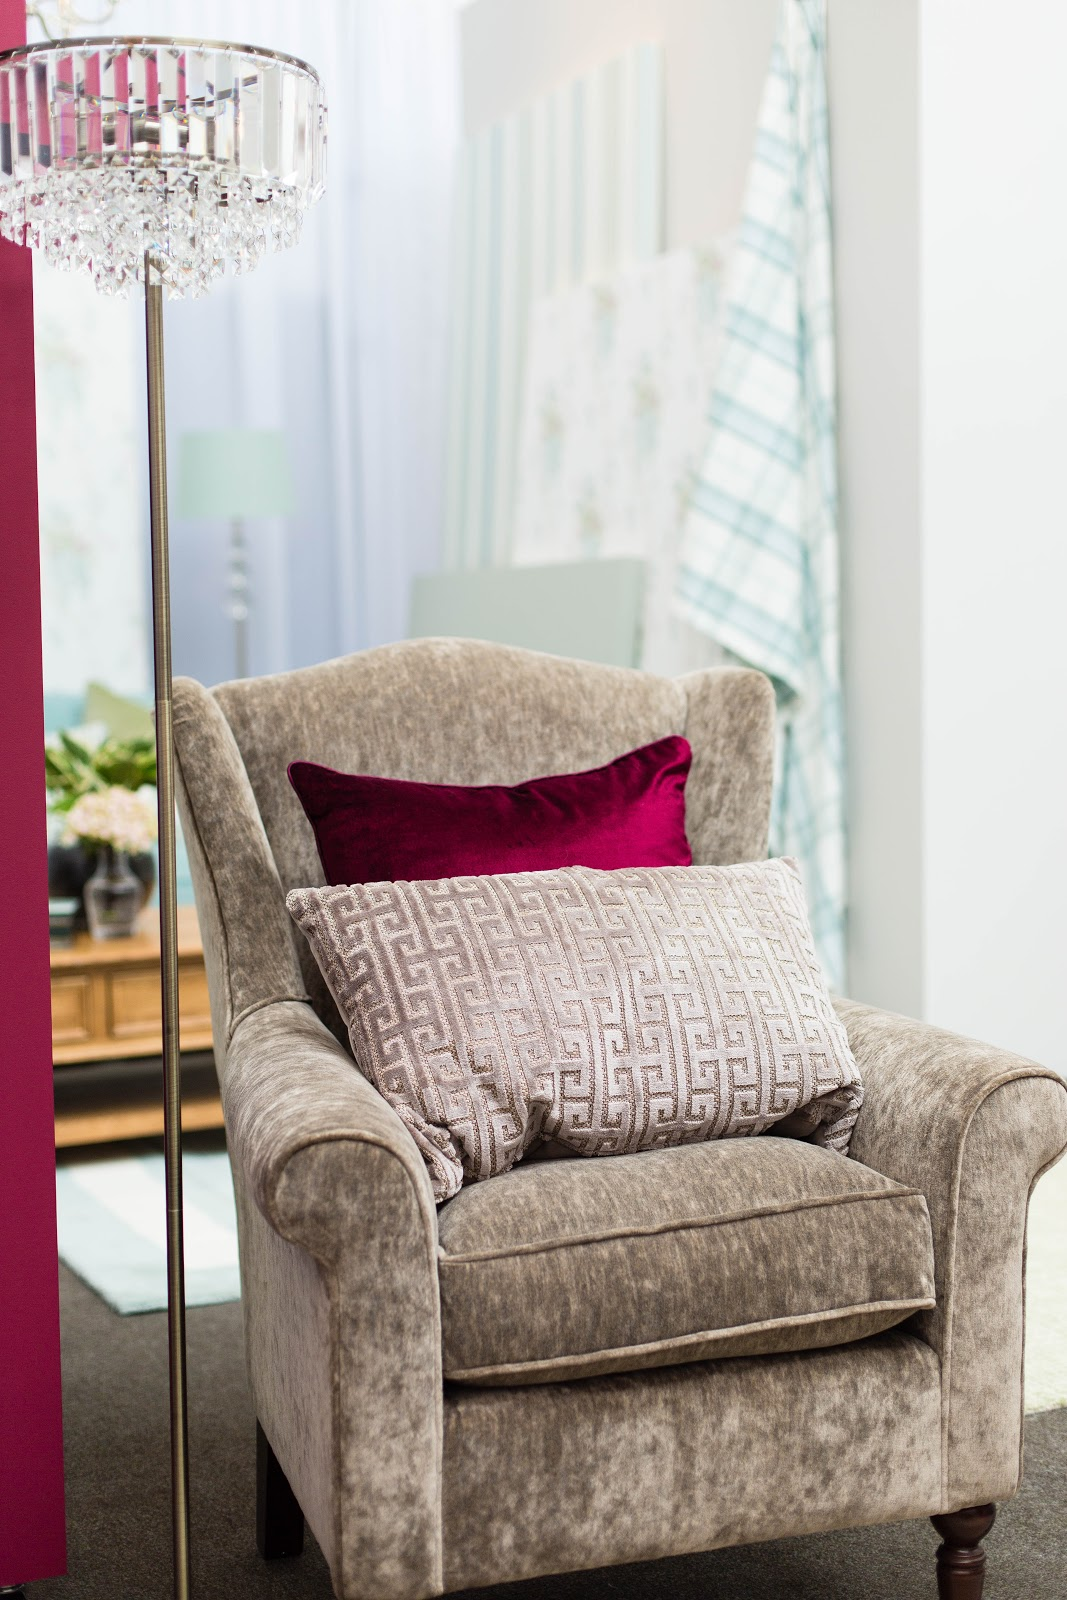 LAURA ASHLEY PRESS SHOW AW FINNTERIOR DESIGNER - Laura ashley living room purple